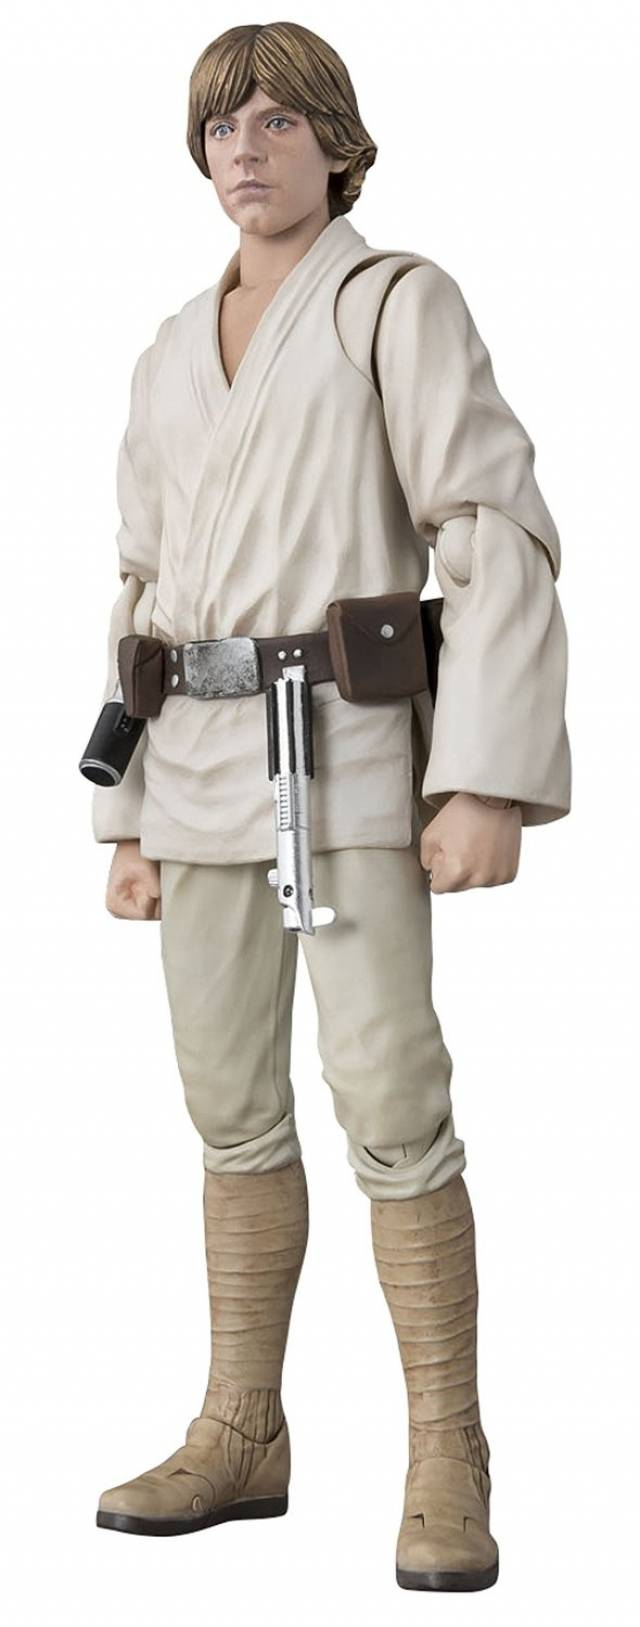 S.H. Figuarts - Star Wars - Luke Skywalker - A New Hope